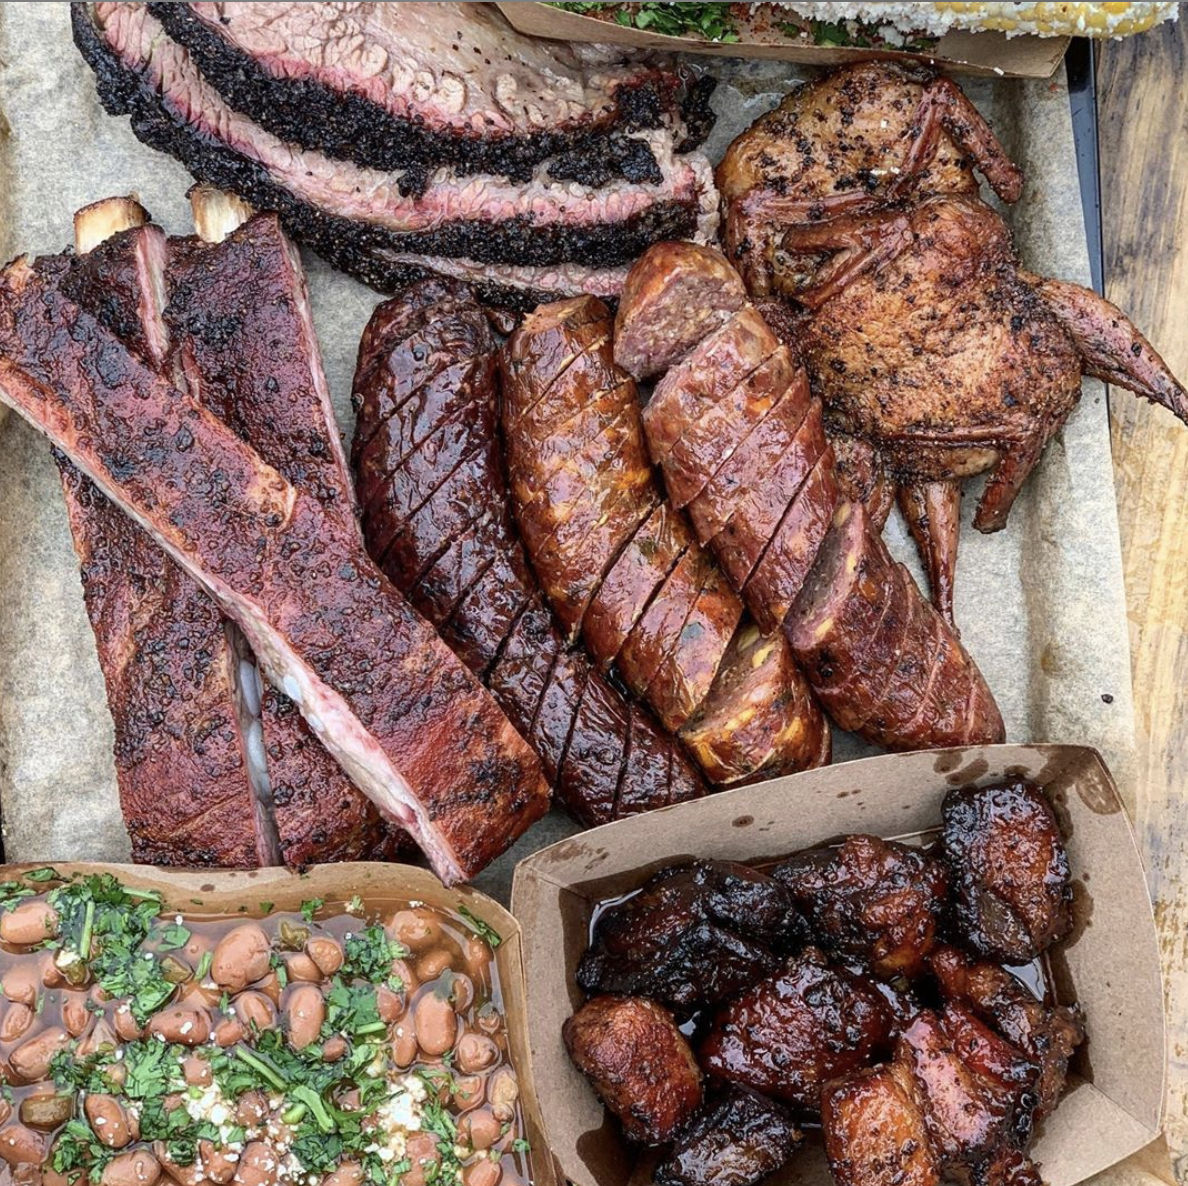 Platter from    Hurtado Barbecue    - Arlington, Texas